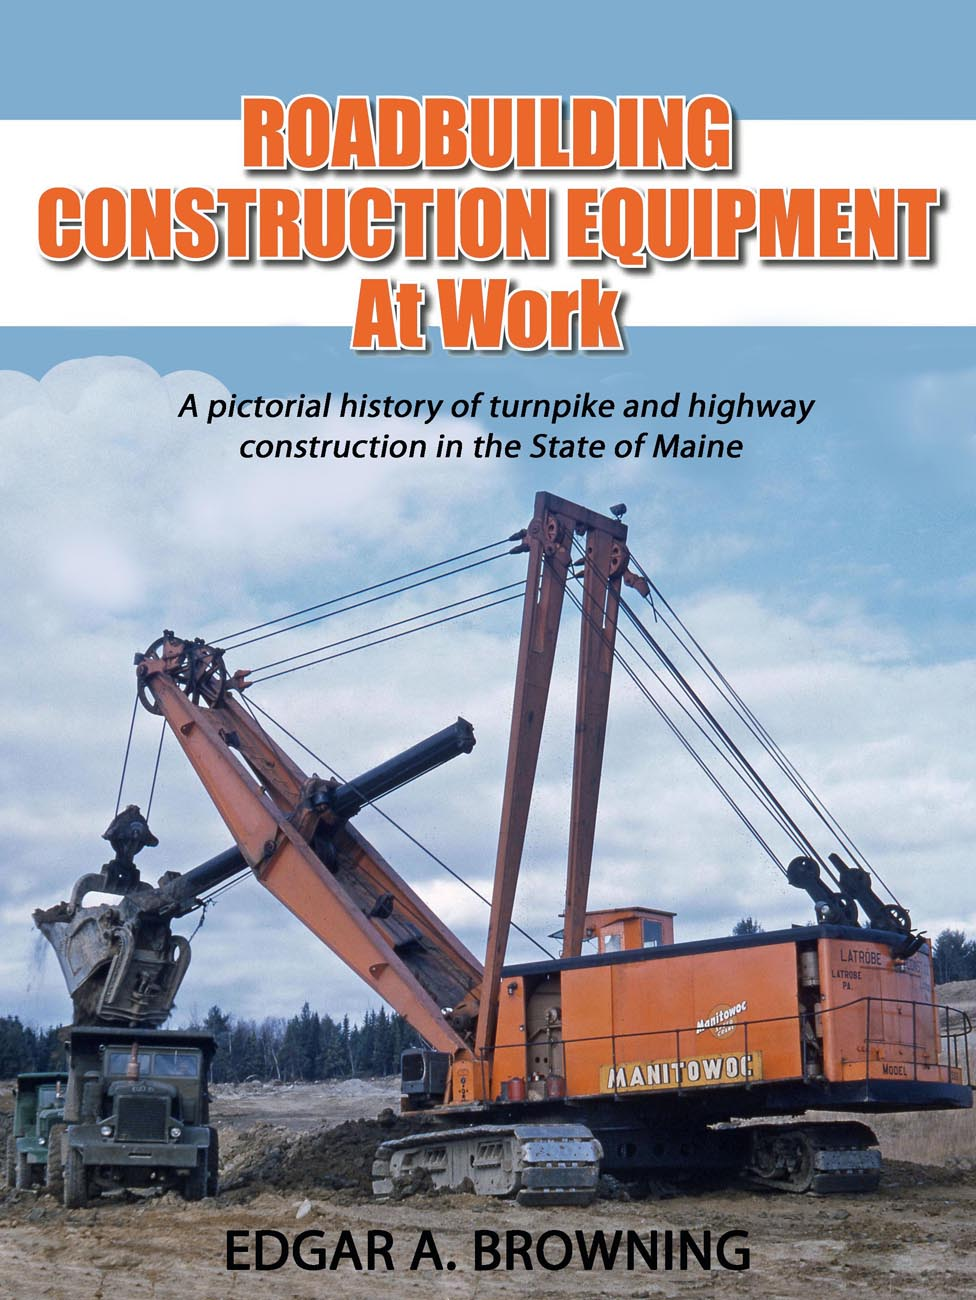 dozer and related books classic dozers this is the second in a series of state by state historical photo essays of road building construction equipment at work the book covers both state and